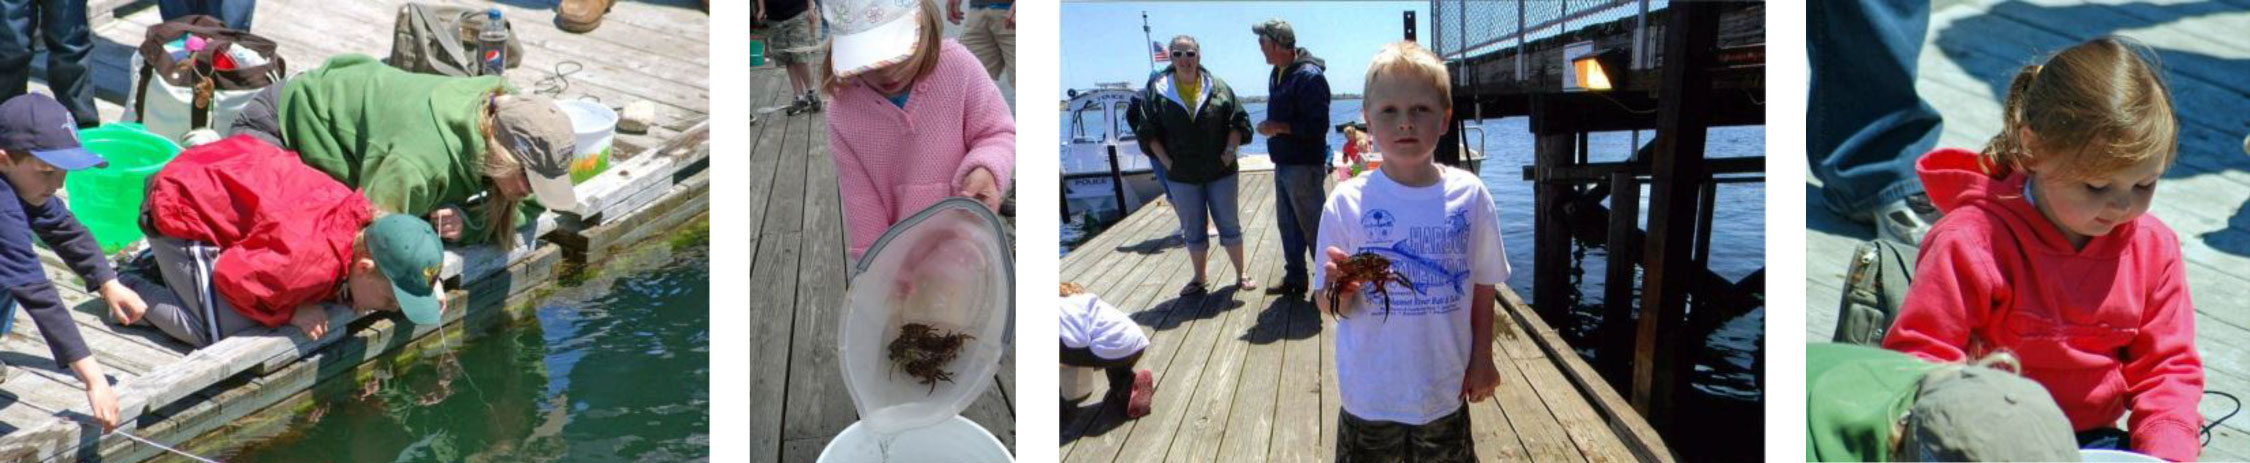 Webhannet River Boatyard - For Families - Crabbing